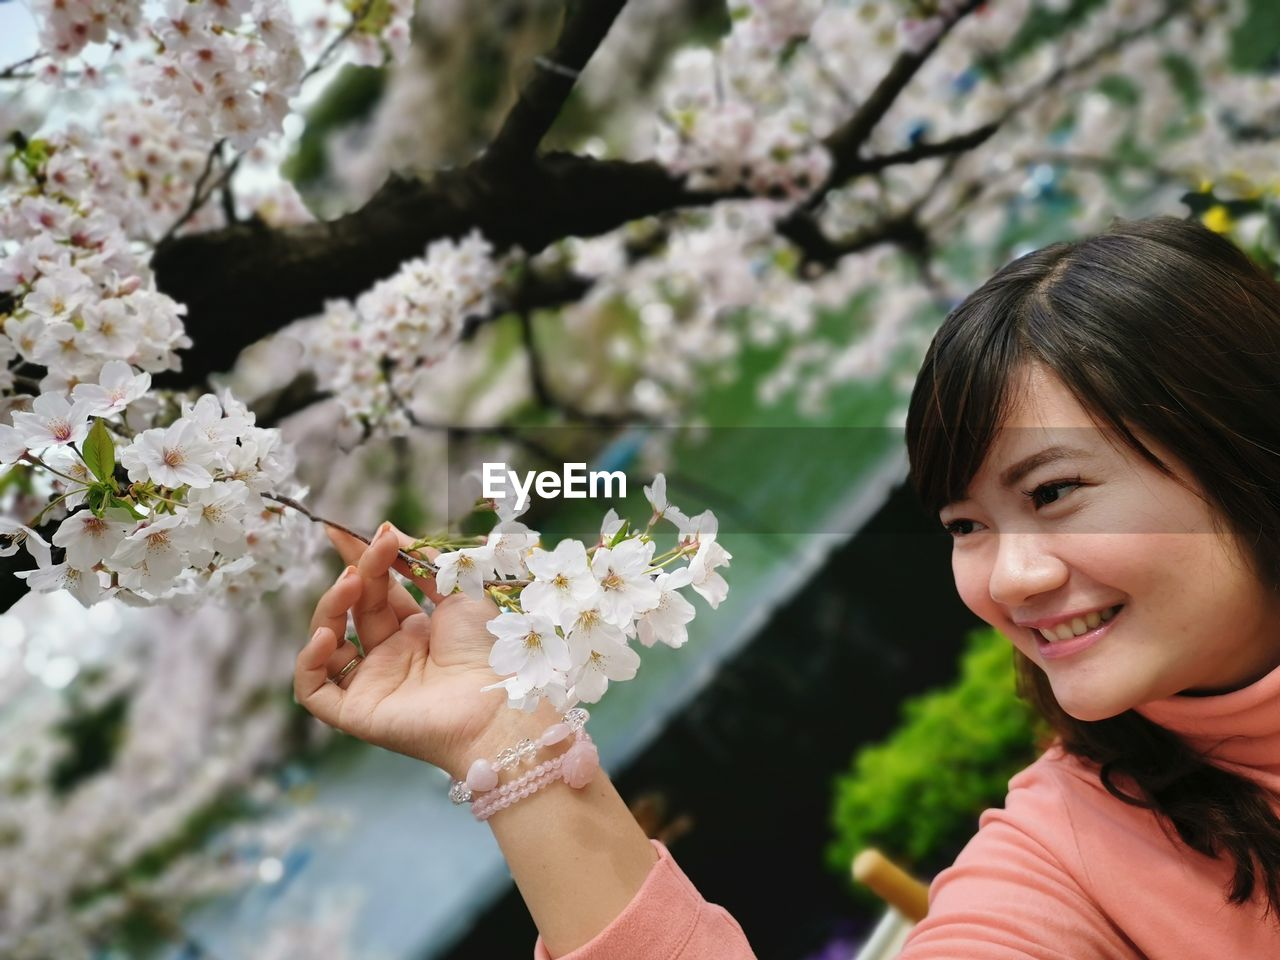 Smiling young woman looking at white flowers